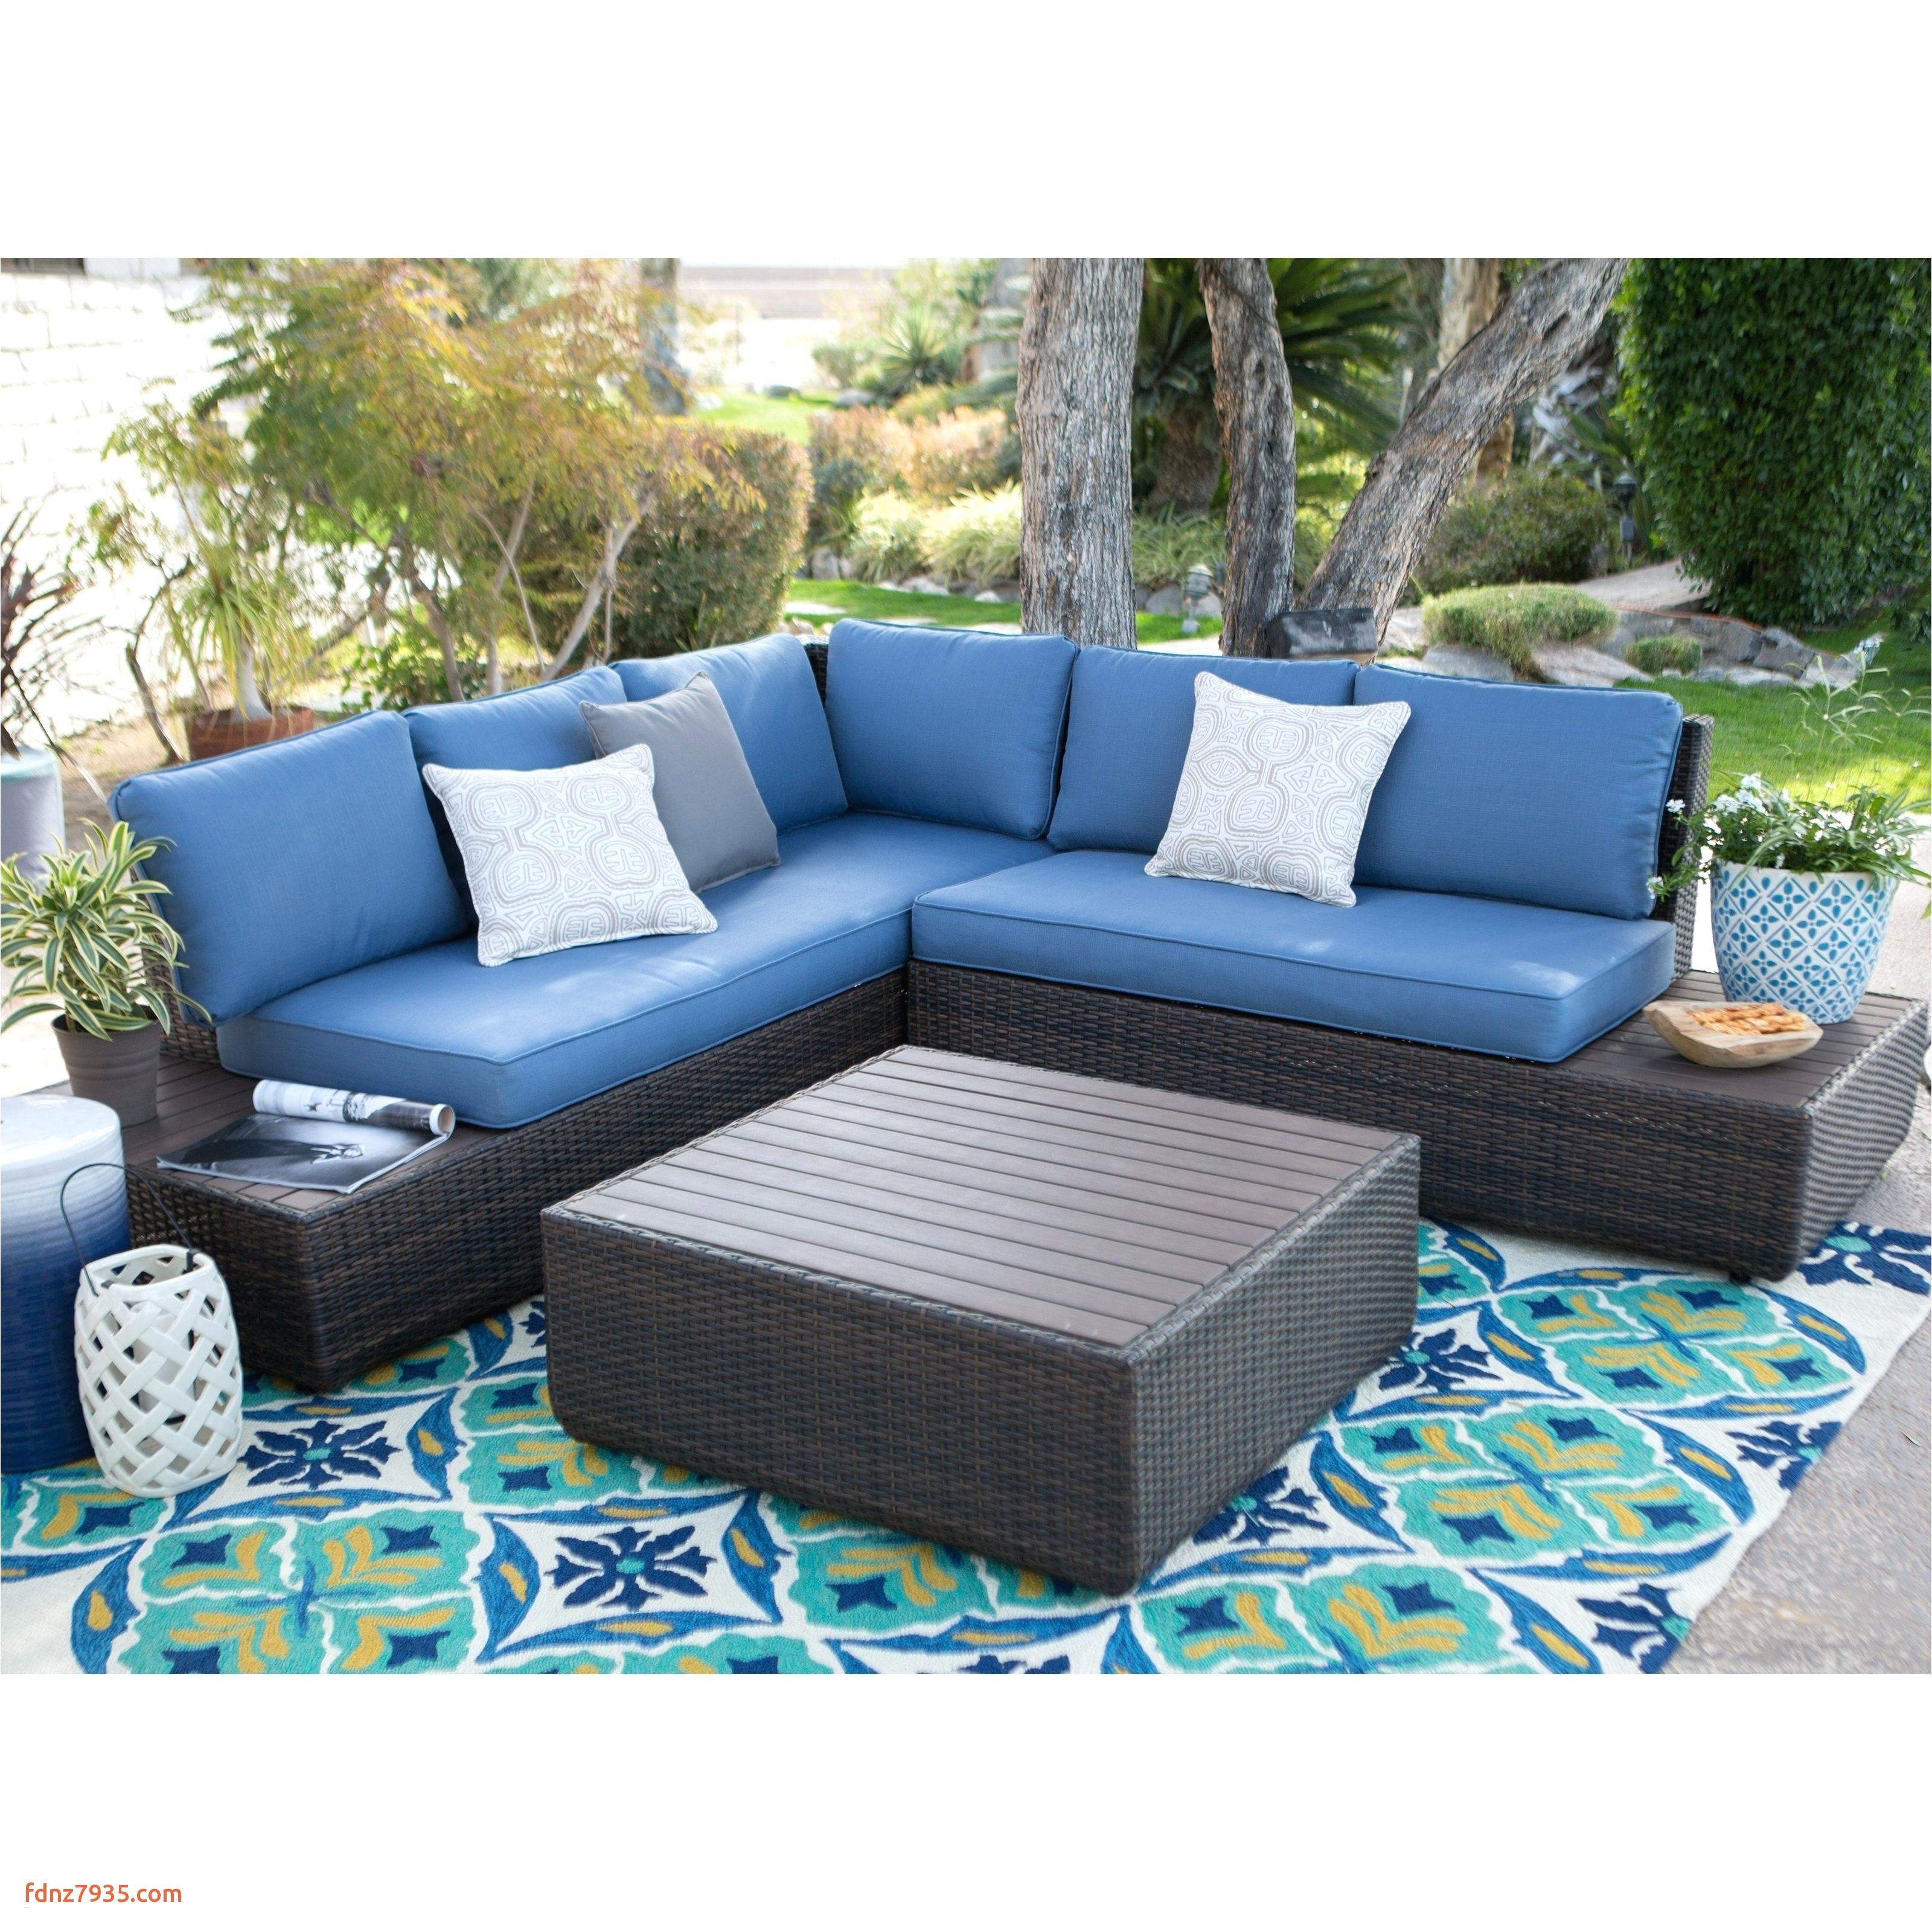 outdoor sectional replacement cushions lovely turquoise patio furniture beautiful wicker outdoor sofa 0d patio